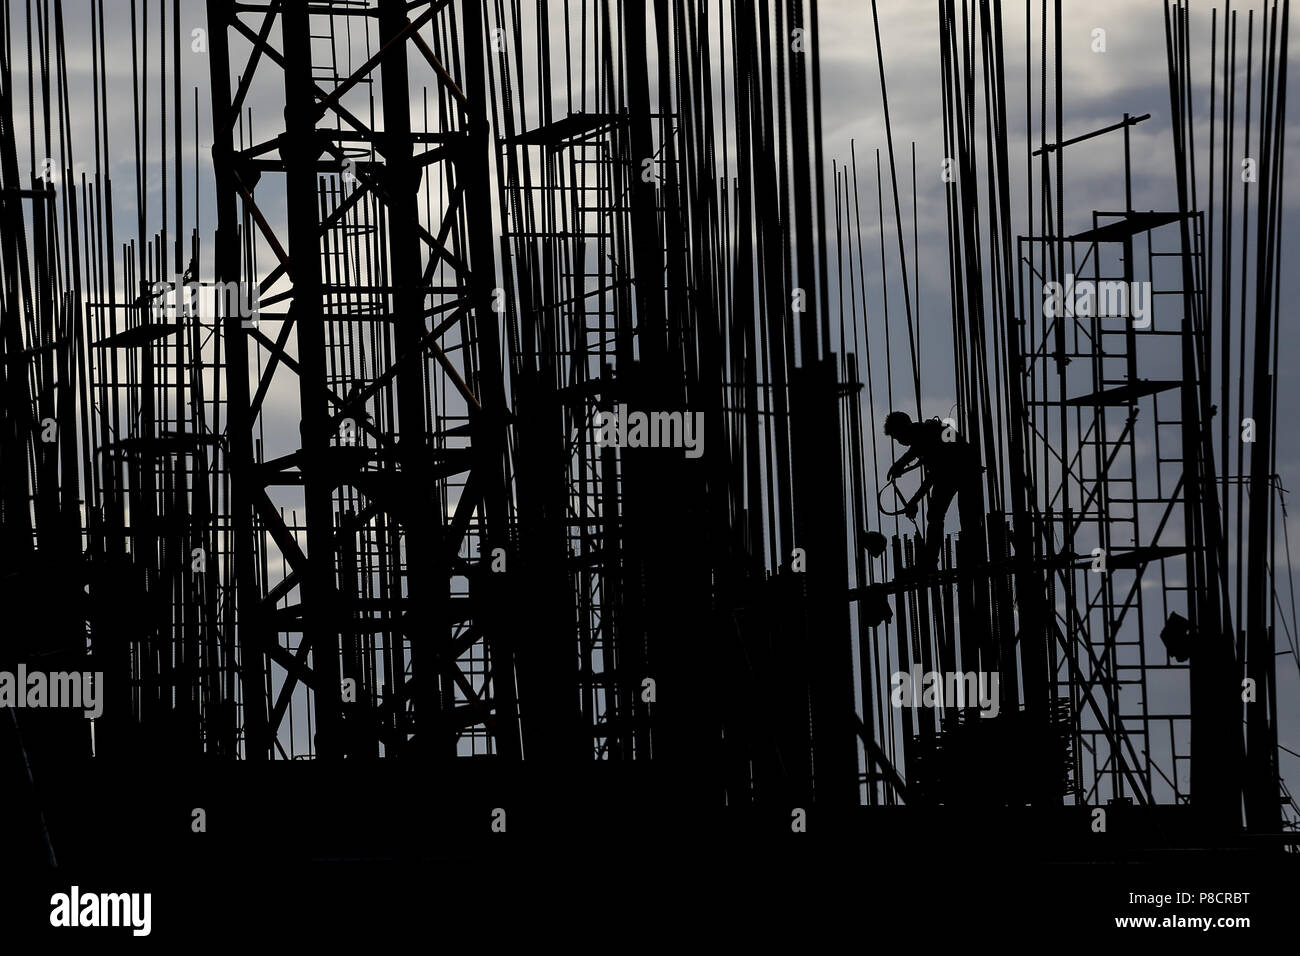 Manila, Philippines. 10th July, 2018. A construction worker stands on top of a scaffolding at a building site in Manila, Philippines on Tuesday. July 10, 2018. Philippines President Rodrigo Duterte is set to have his third State of the Nation Address (SONA) on July 23 where he will highlight his achievements since taking office, such as infastructure and economic development projects. Credit: Basilio H. Sepe/ZUMA Wire/Alamy Live News Stock Photo